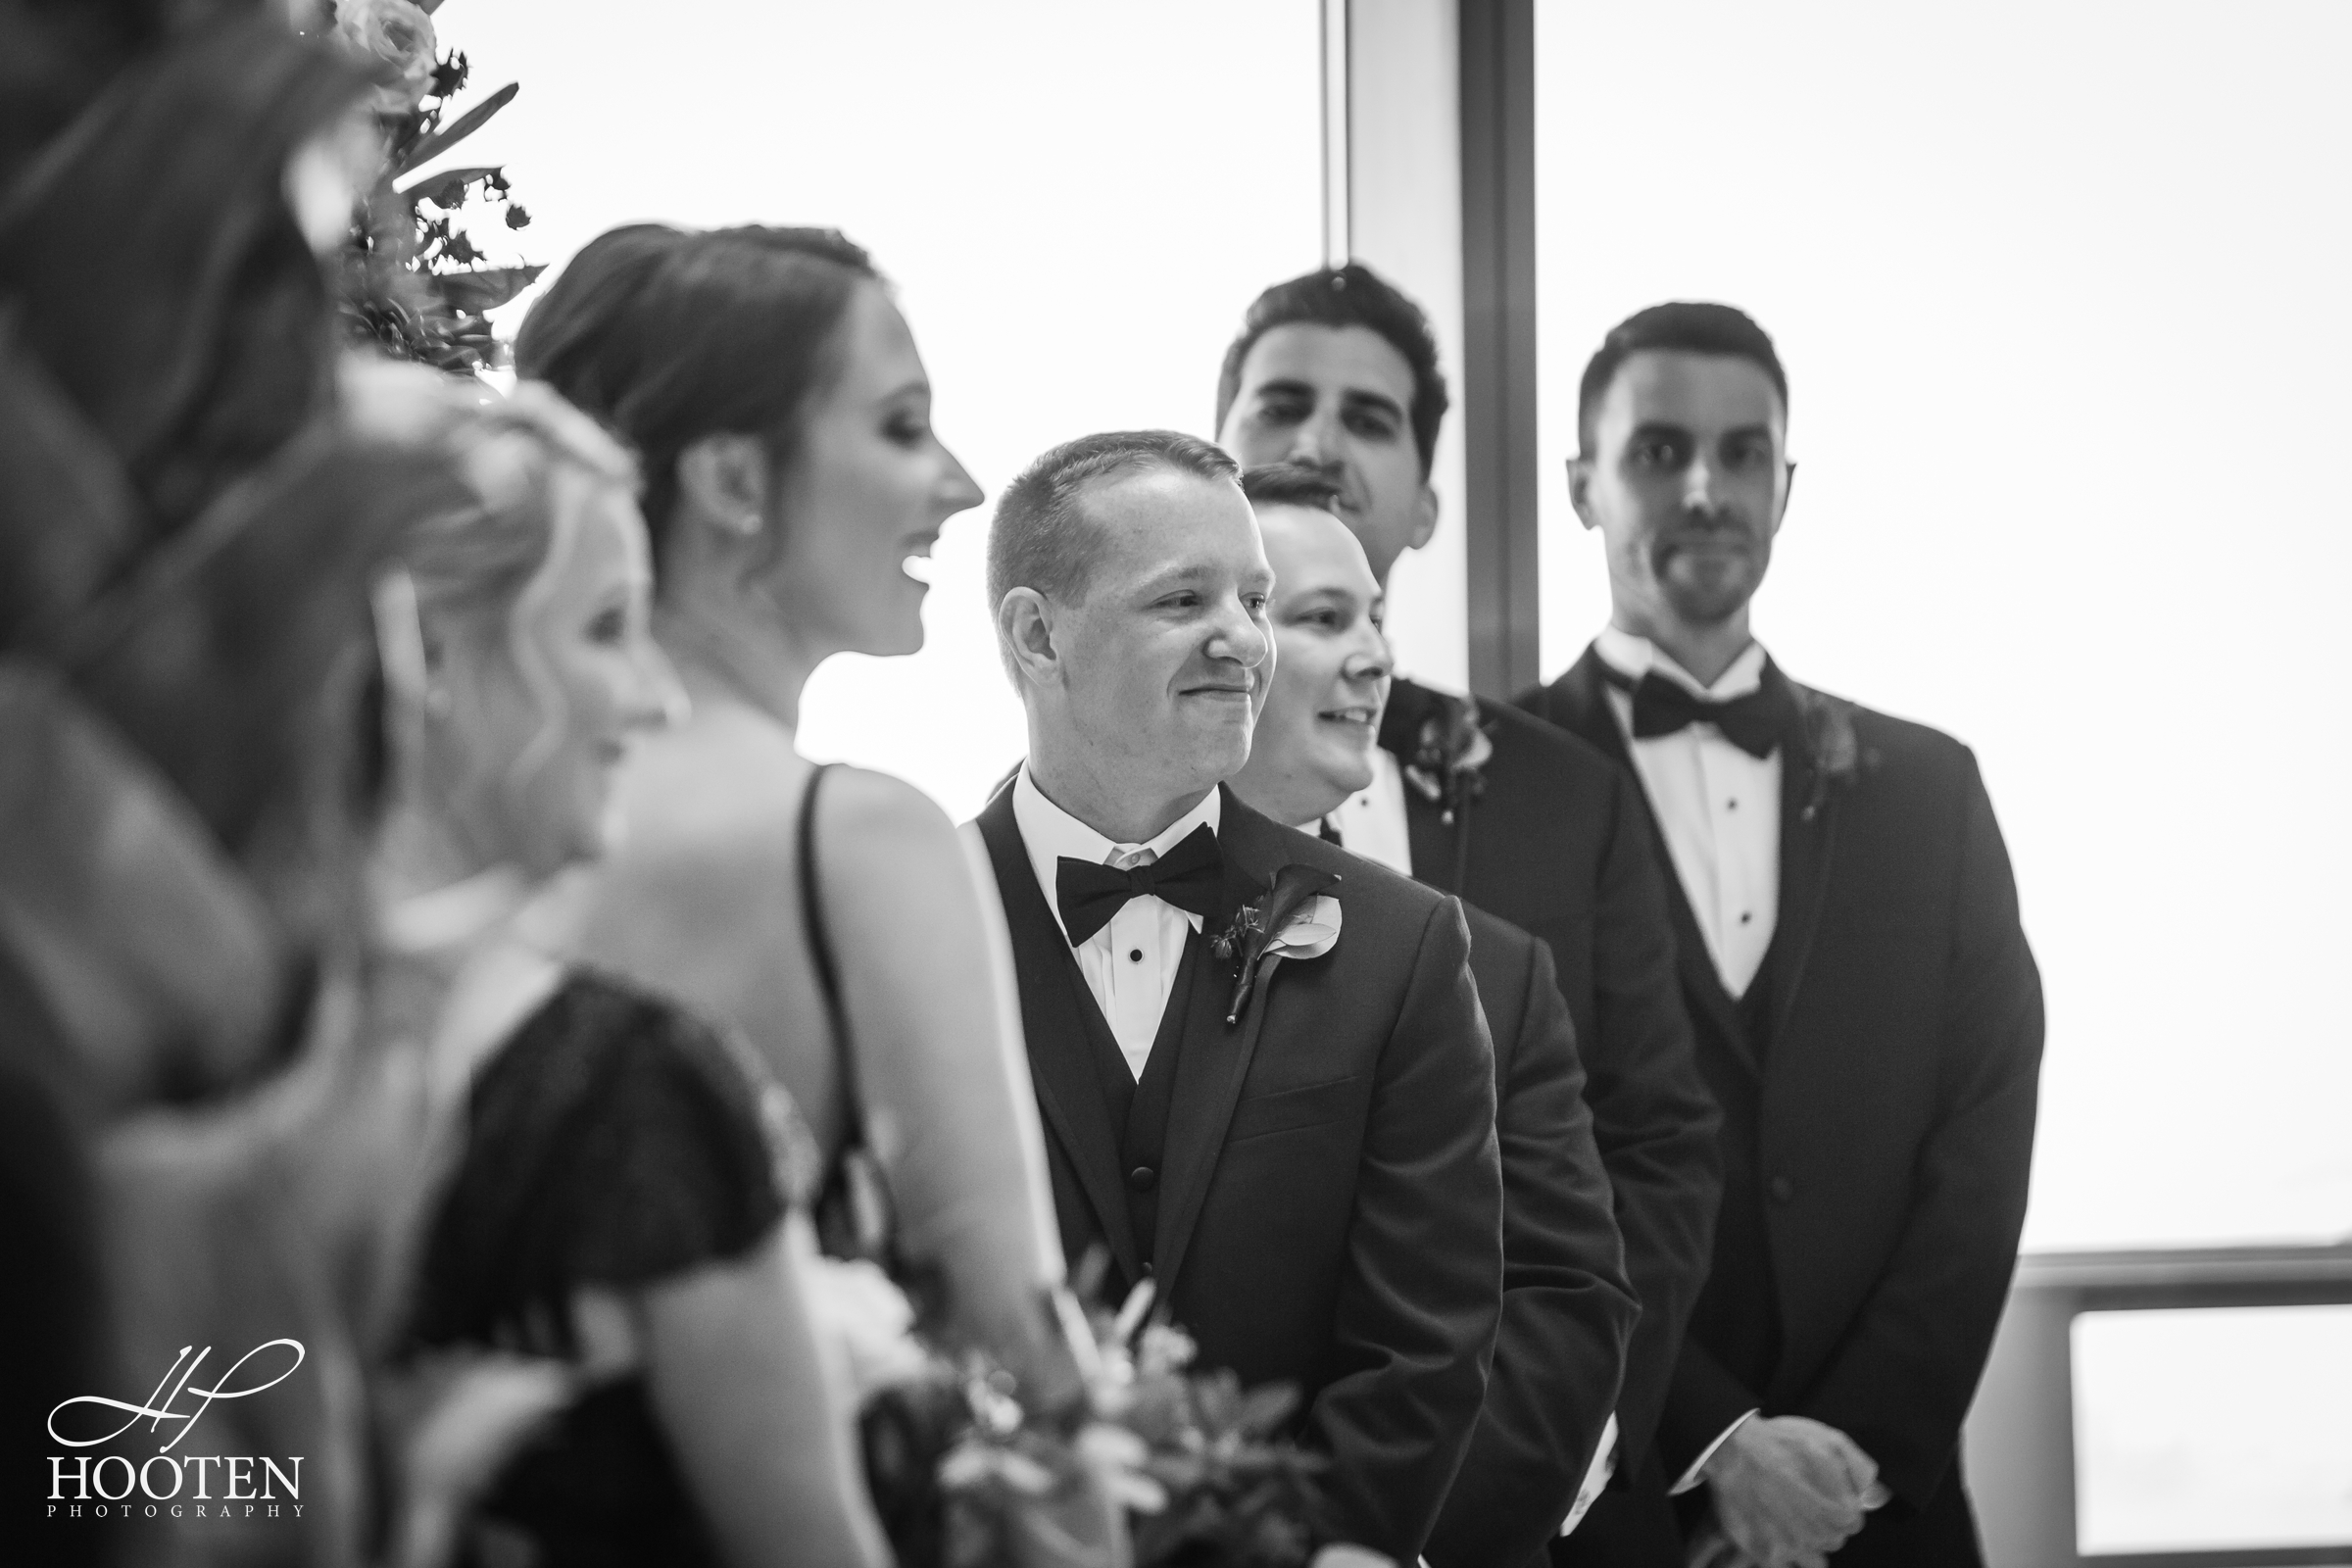 047.Conrad-Miami-Hotel-Wedding-Hooten-Photography.jpg